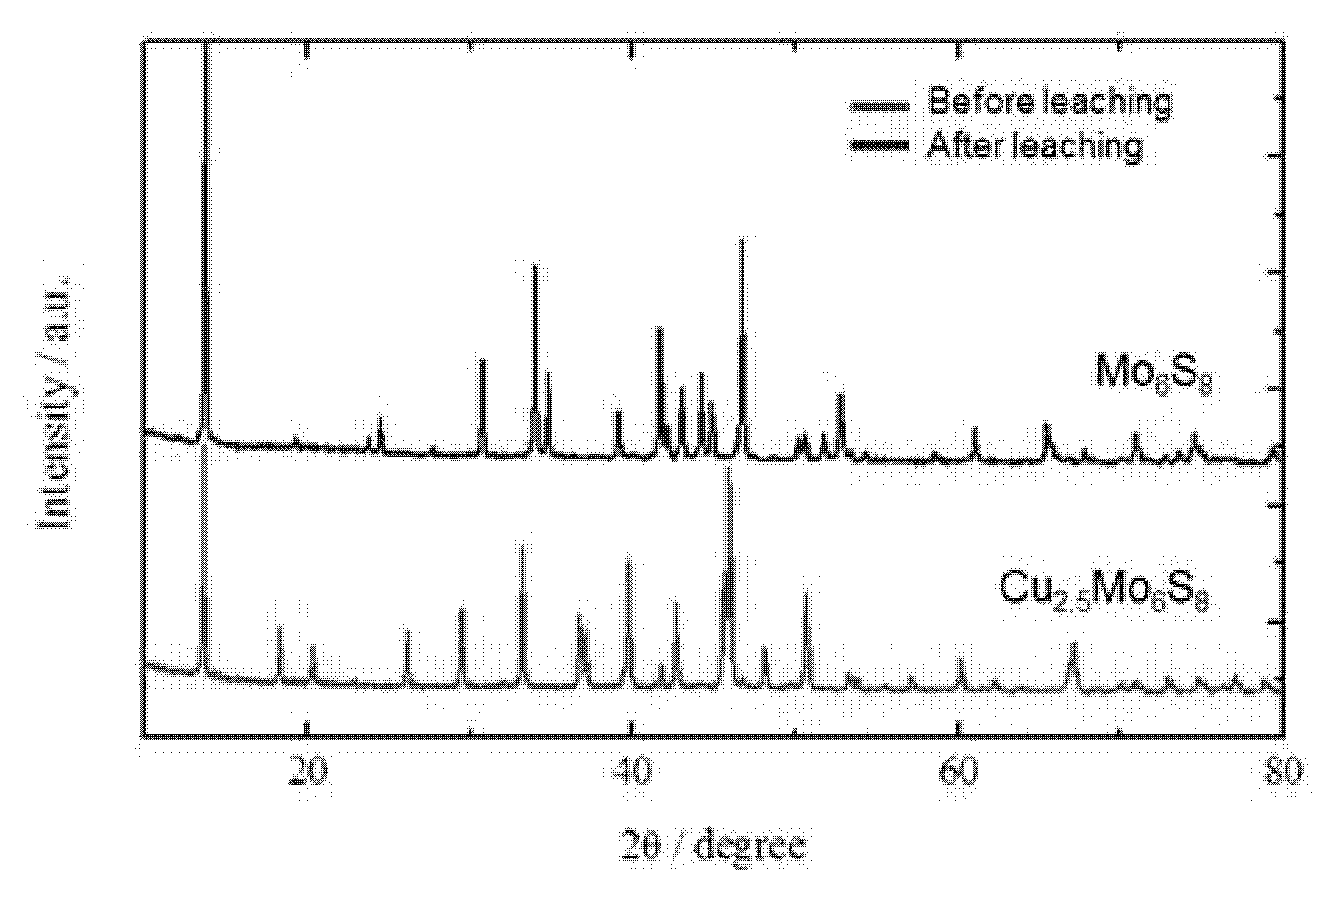 synthesis and characterization of pb s se thin Synthesis and characterization of nanocrystals and their application for   optical properties, but the presence of heavy metals (cd and pb) is   nanocrystals are dispersed in a solvent, allowing the formation of thin films by  non-  list of chemicals used in the synthesis: cadmium oxide (cdo), elemental  selenium (se).